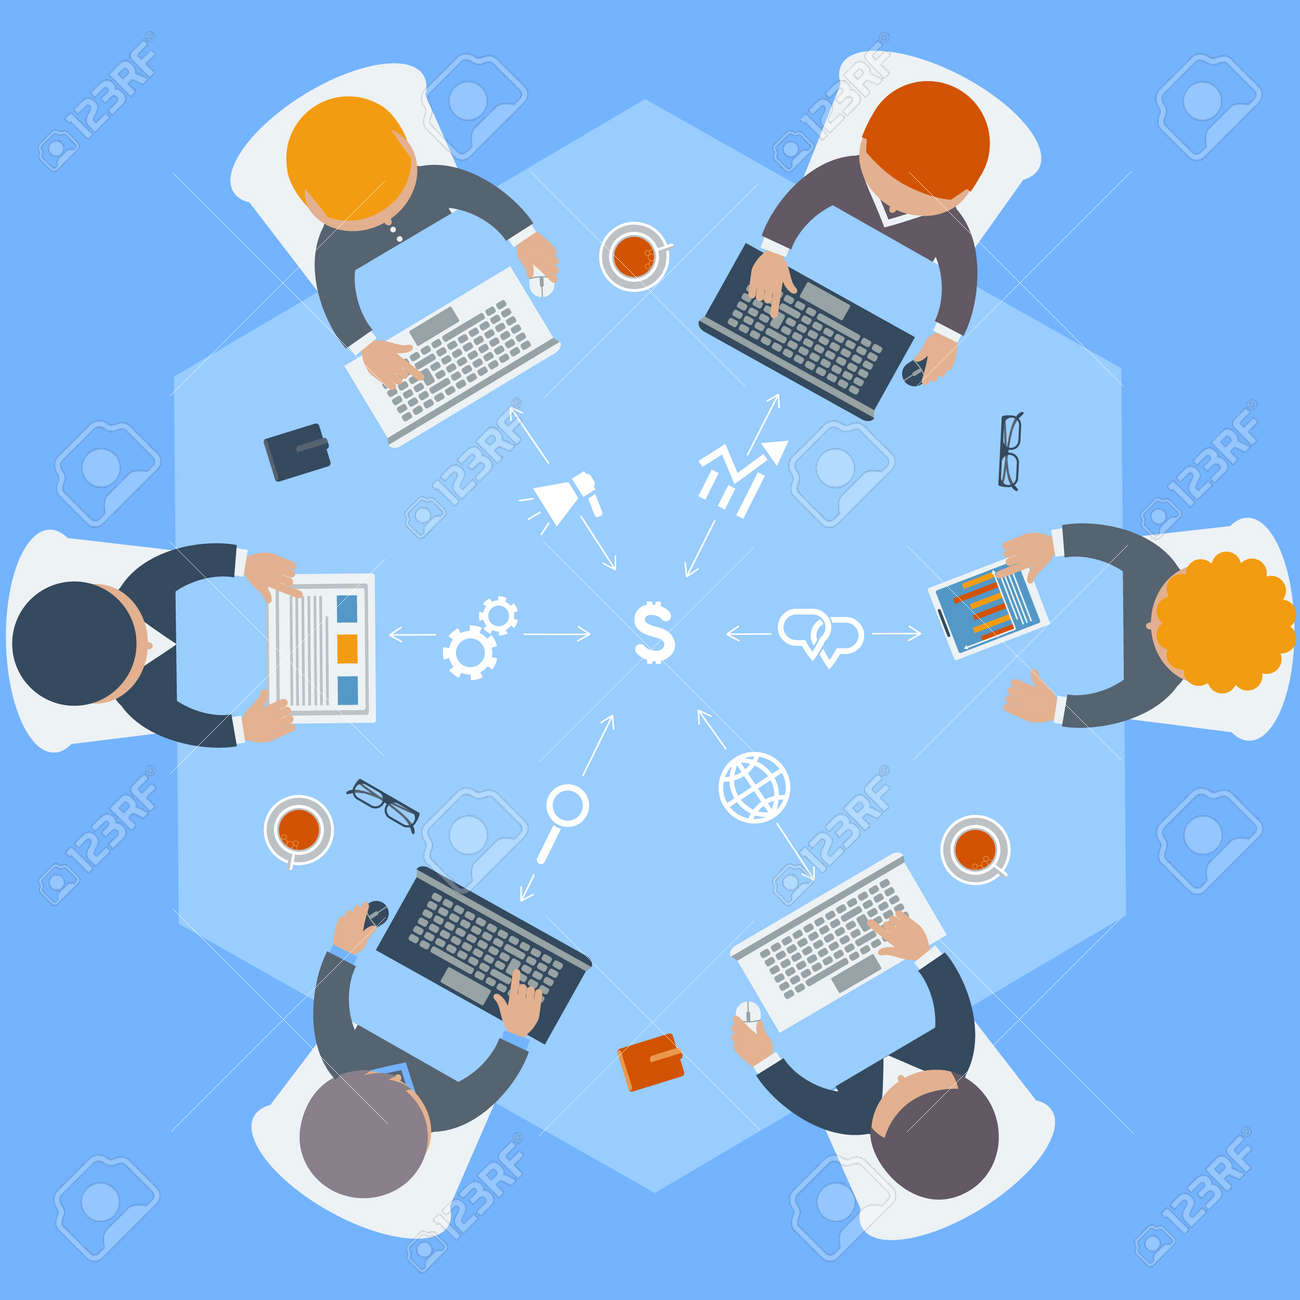 Round table meeting icon - Office Teamwork Workers Business Management Meeting And Brainstorming On Round Table In Top View Flat Design